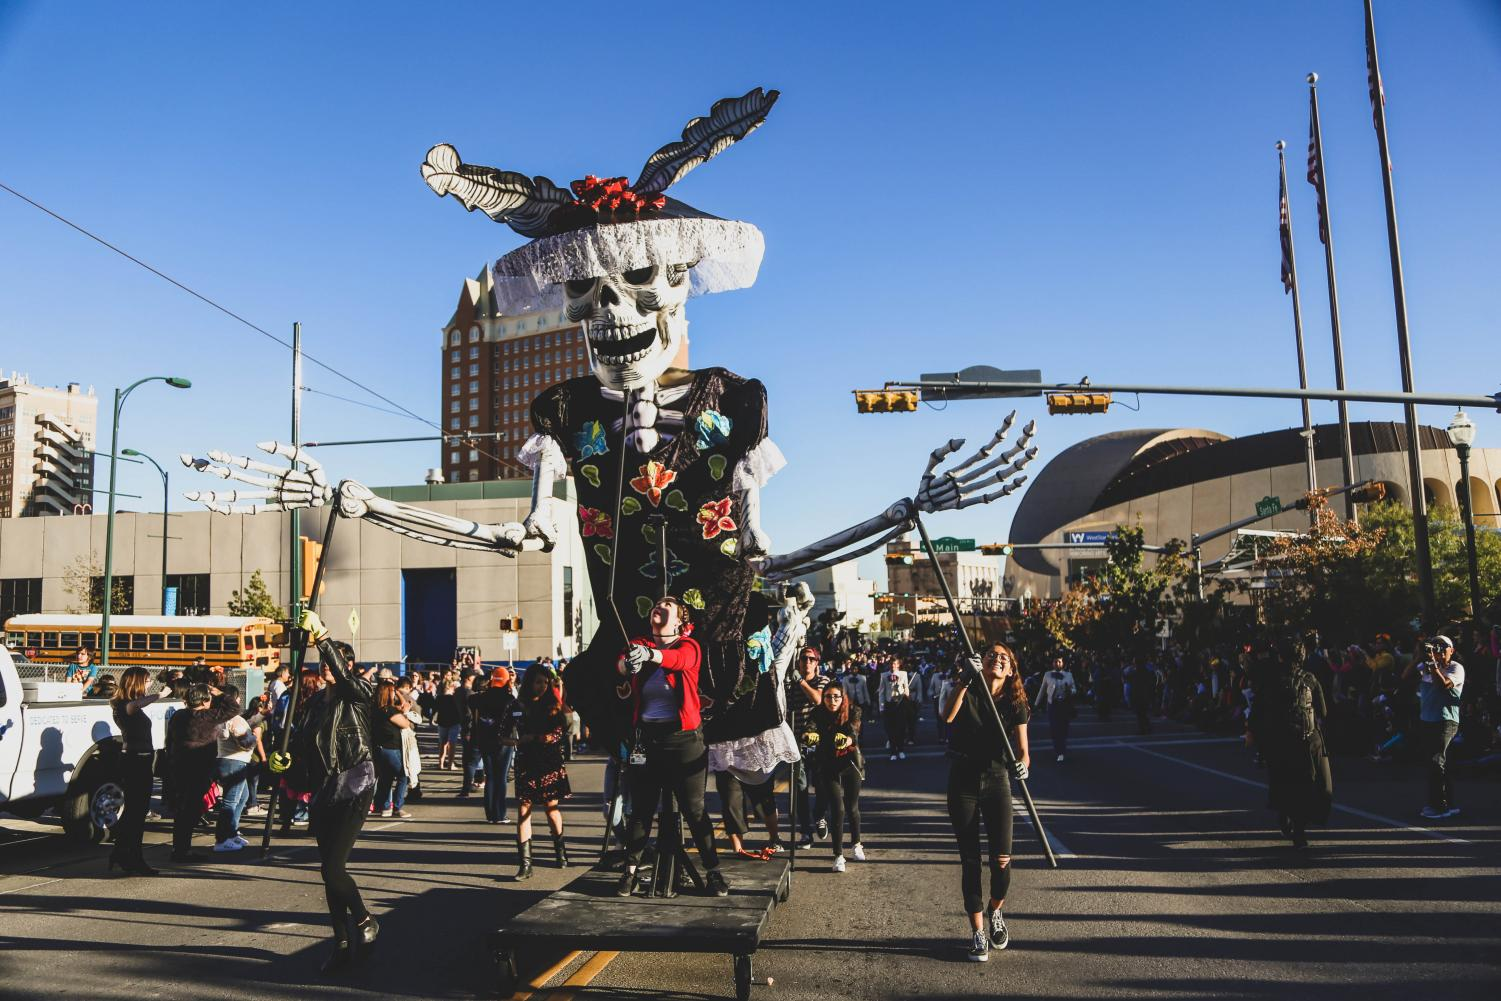 Marionettes+by+the+artist+collective+from+Mexico+City%2C+Colectivo+Ultima+Hora+are+featured+in+the+first+annual%C2%A0Noche+de+Calaveras+Parade+hosted+by+the+El+Paso+Museum+of+Art.+